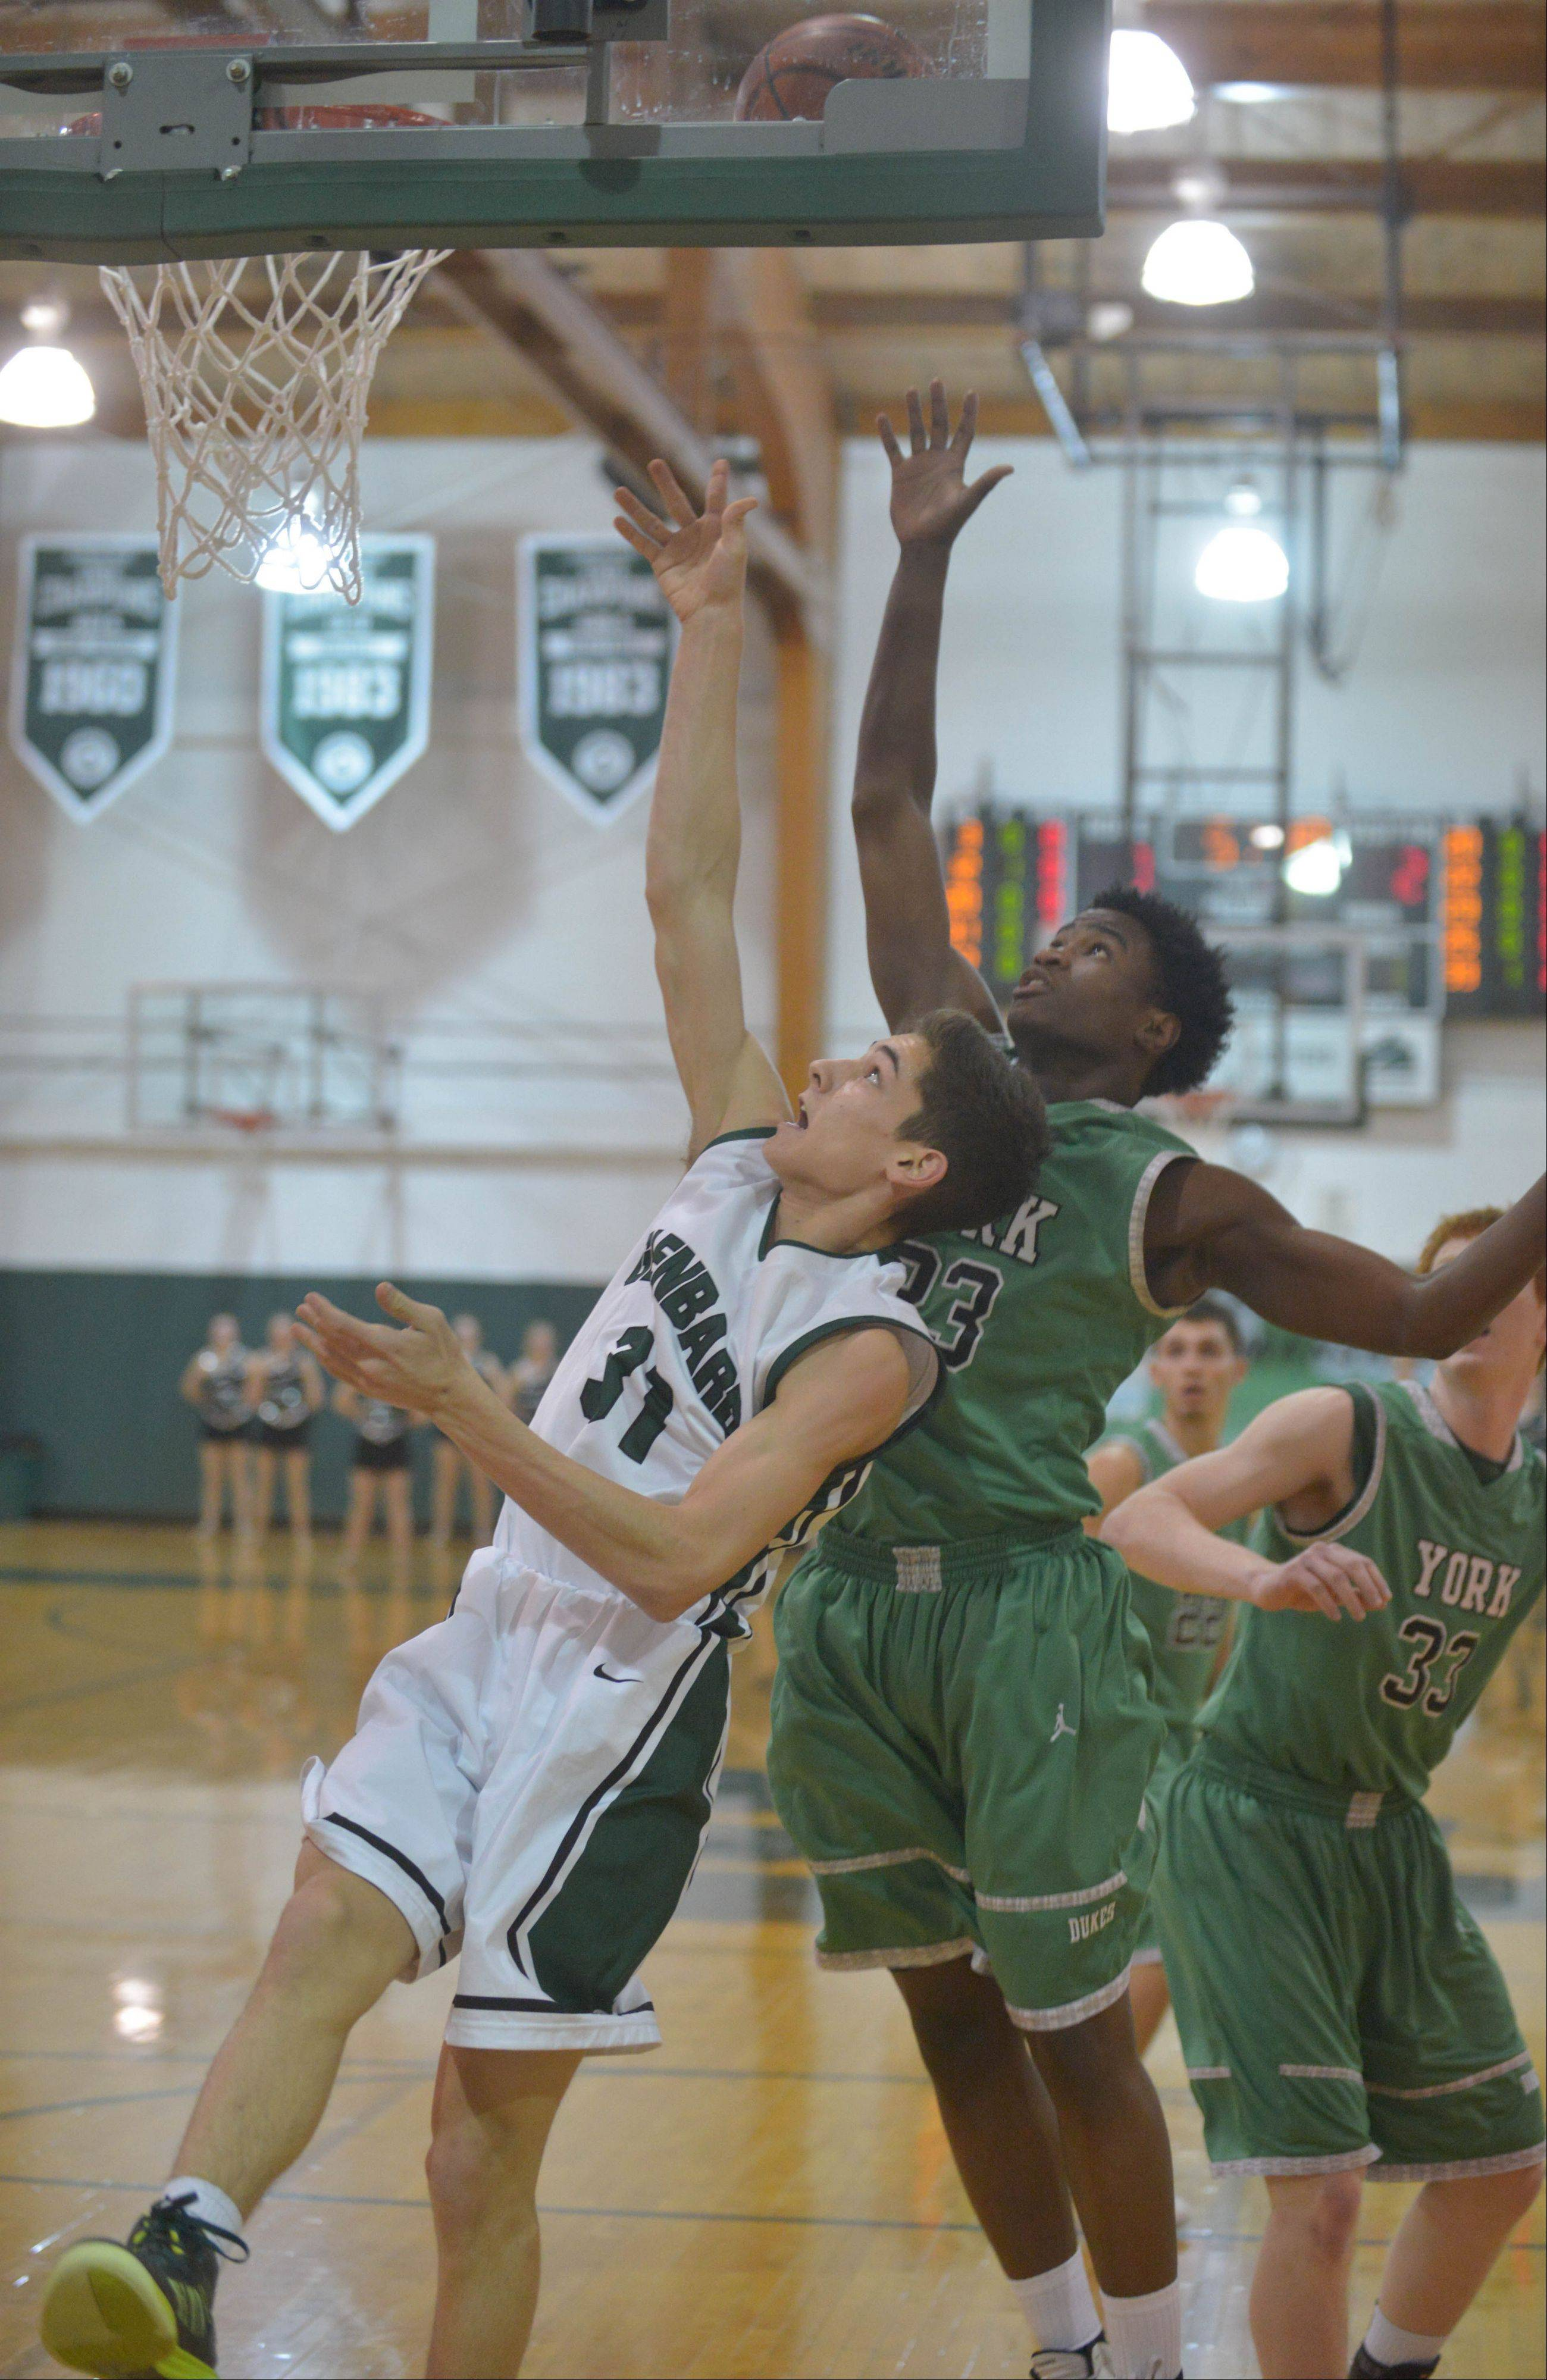 Alex Passi of Glenbard West,left, and Jayvon Thomas of York go for a rebound.